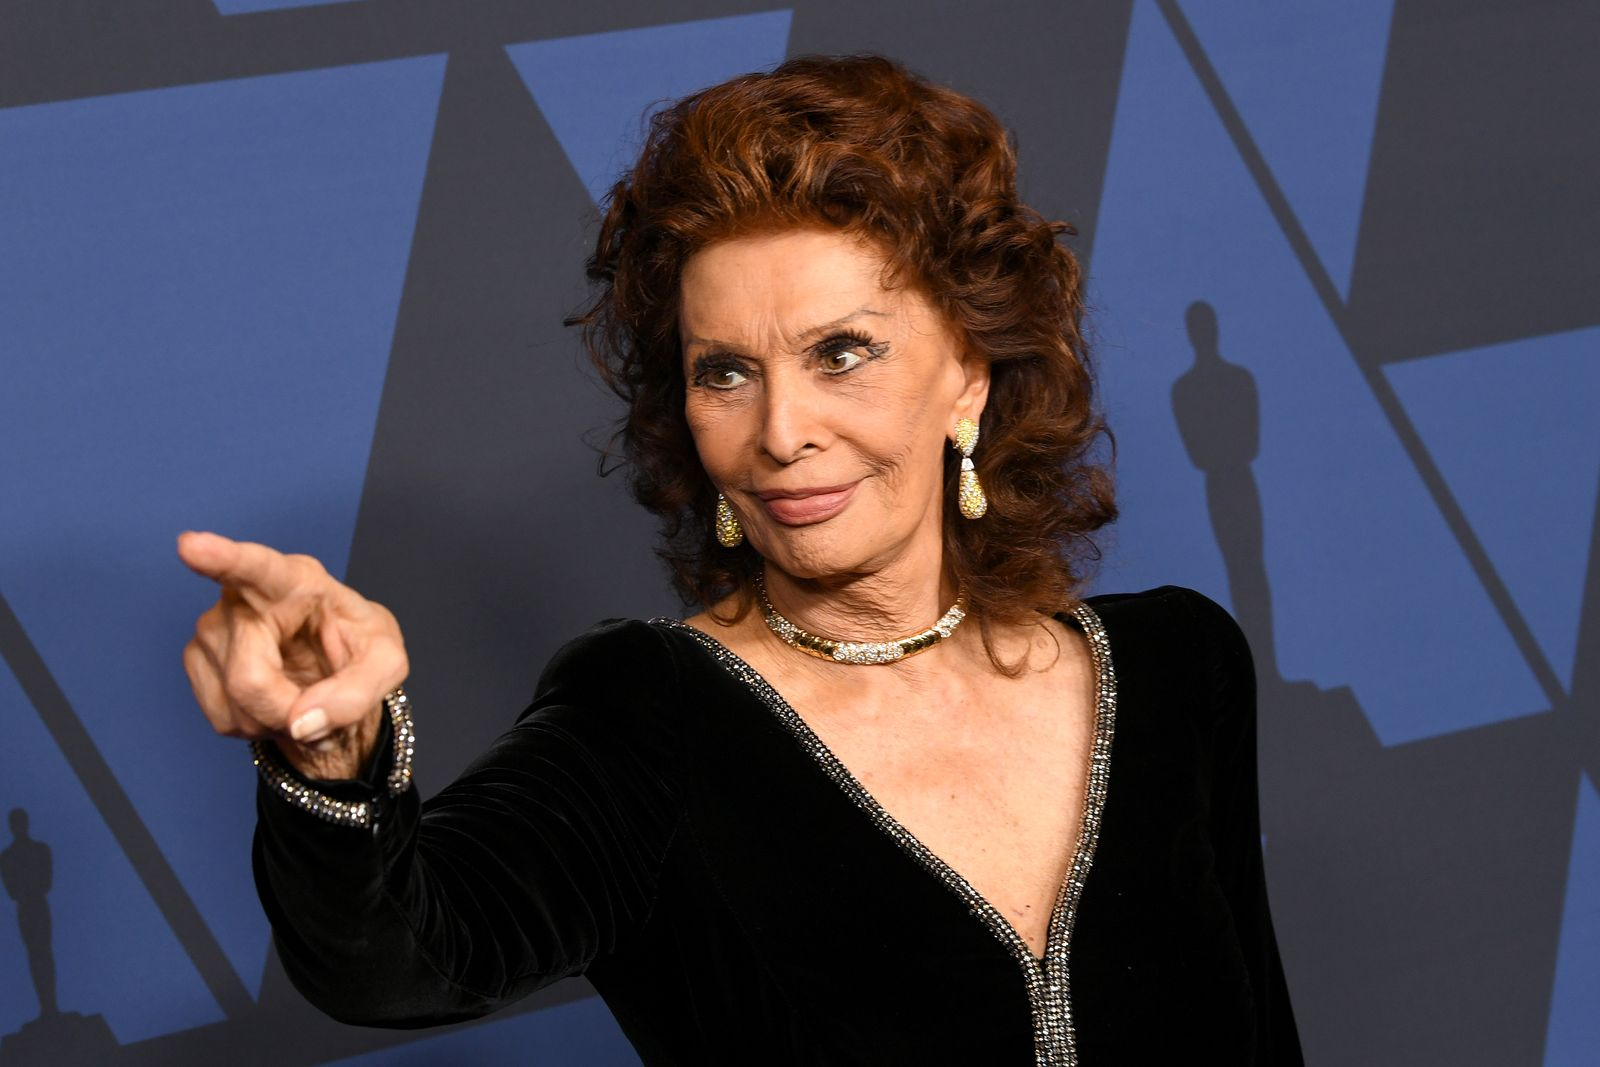 Sophia Loren at the Academy of Motion Picture Arts And Sciences' 11th Annual Governors Awards at The Ray Dolby Ballroom at Hollywood & Highland Center on October 27, 2019 | Photo: Getty Images